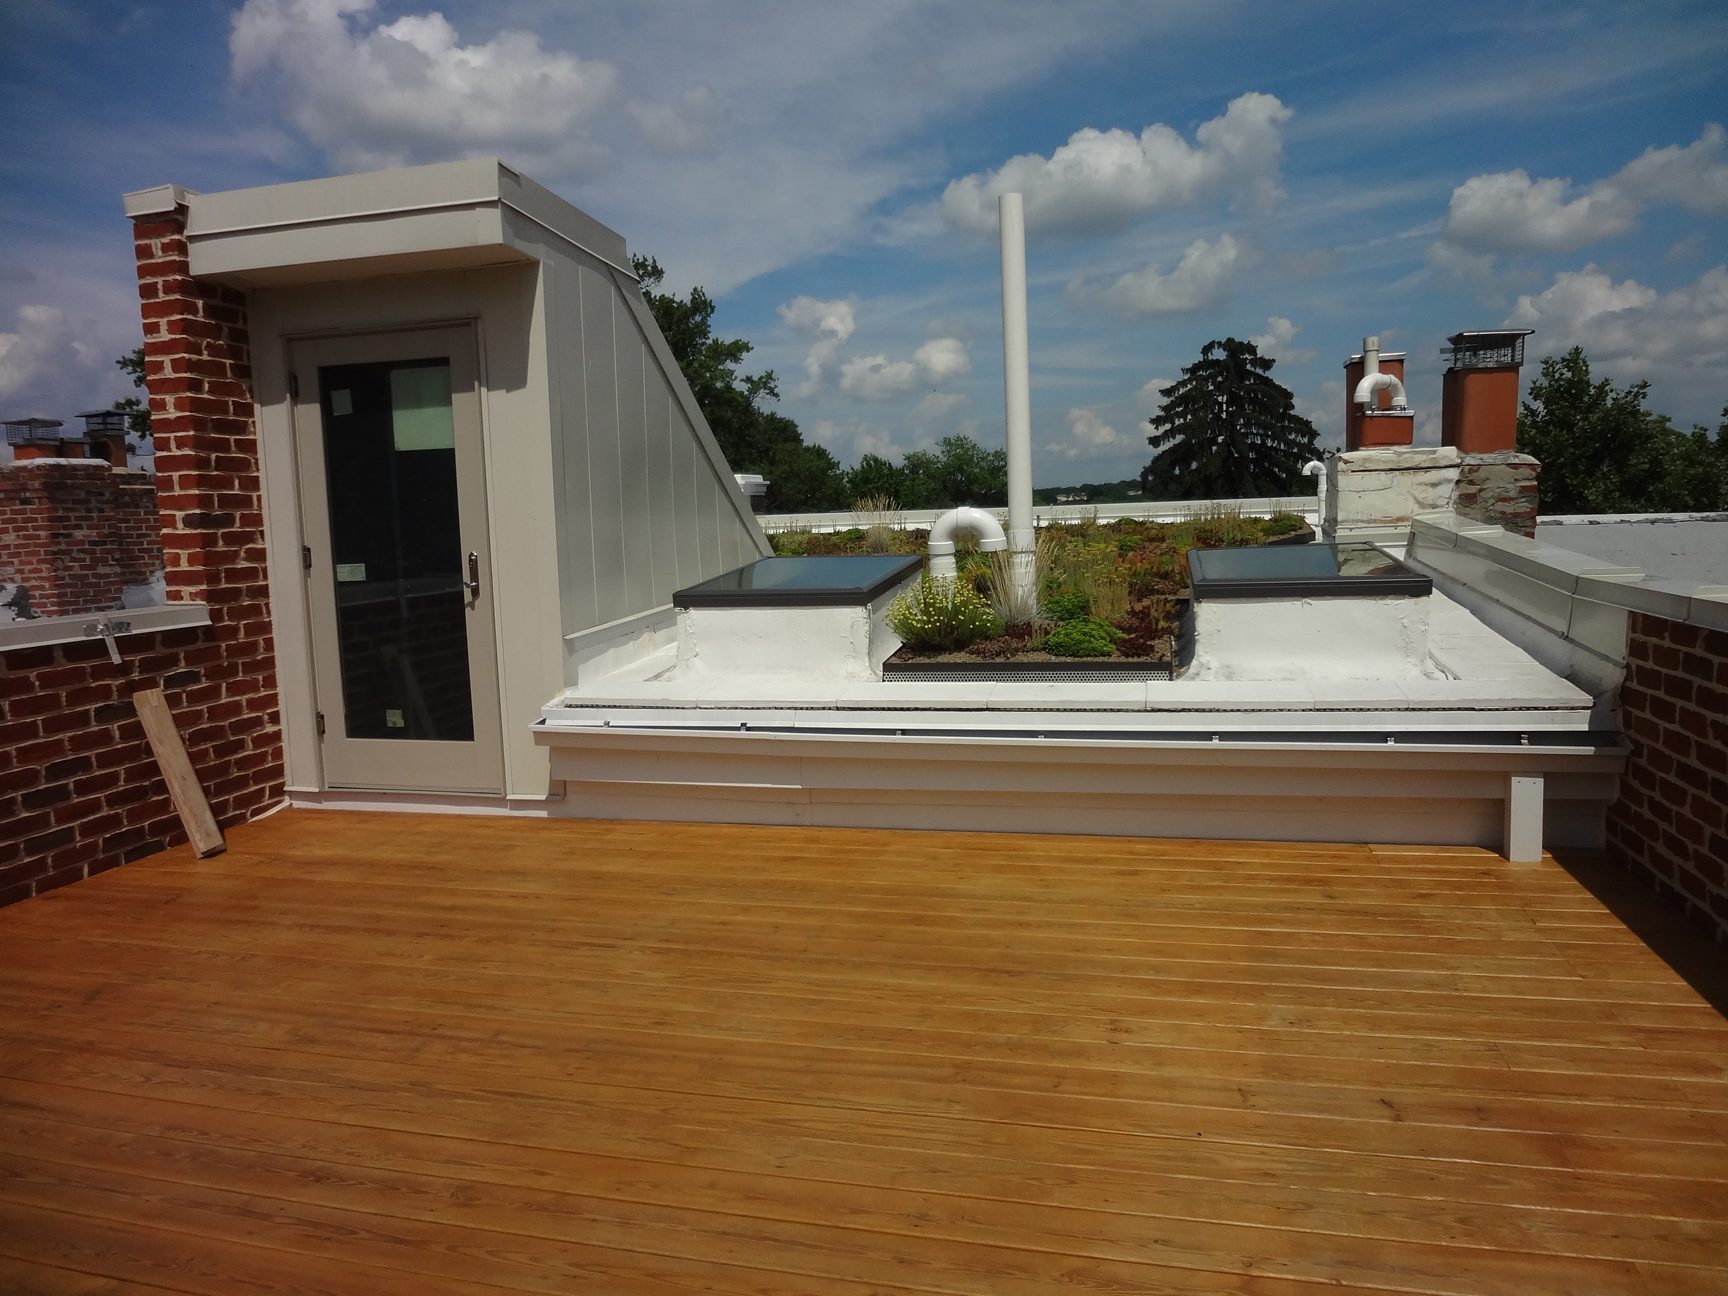 DC building of Green Roof Deck